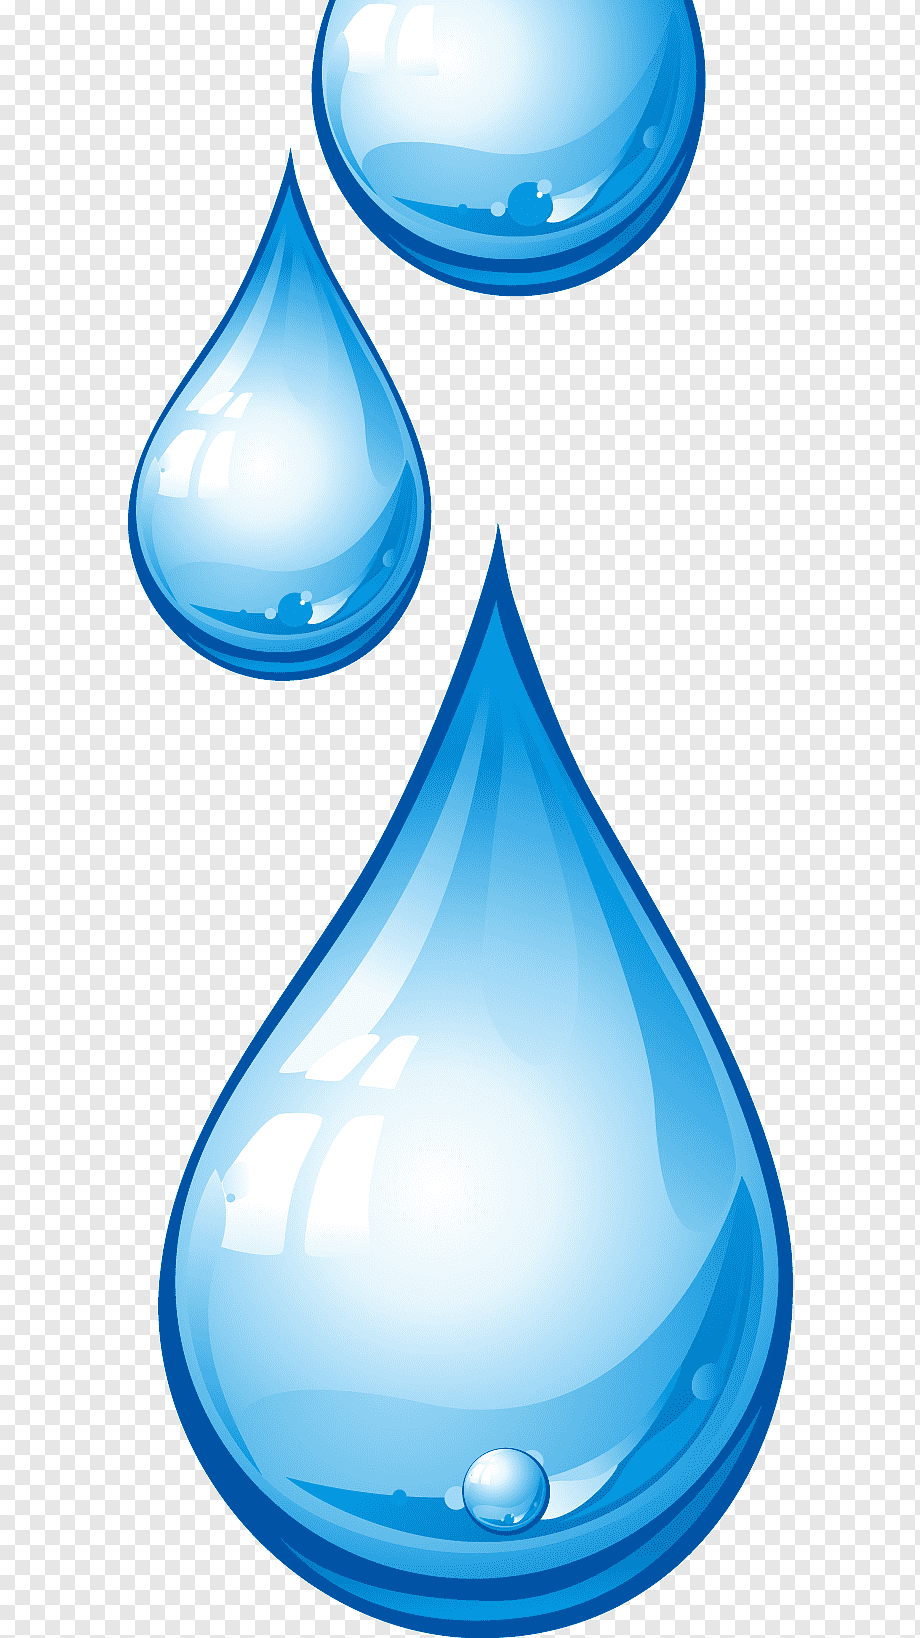 Blue Water Drops Illustration Drop Water Euclidean Fine Drops Of Water Droplets Drop Aerosol Spray Water Glass Png Pngwing